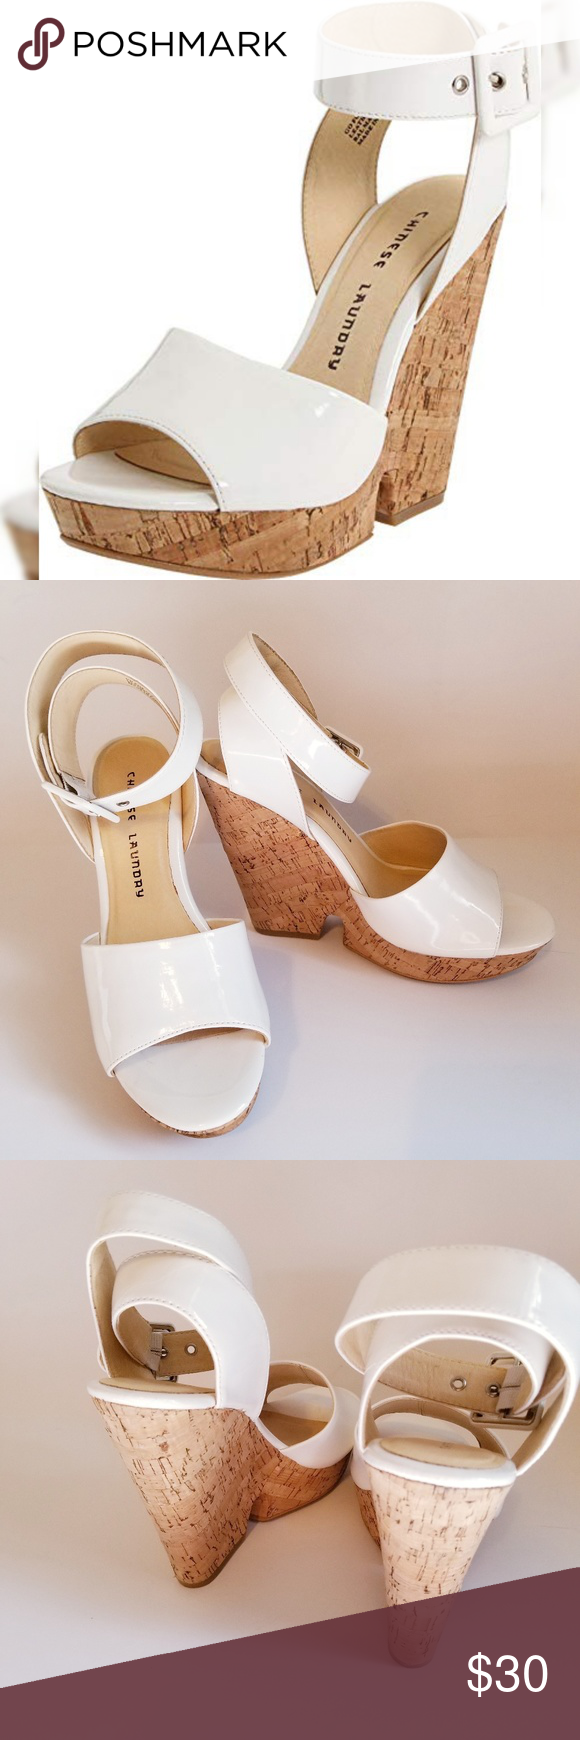 Chinese Laundry White Cork Wedge Heel Chinese Laundry White Cork